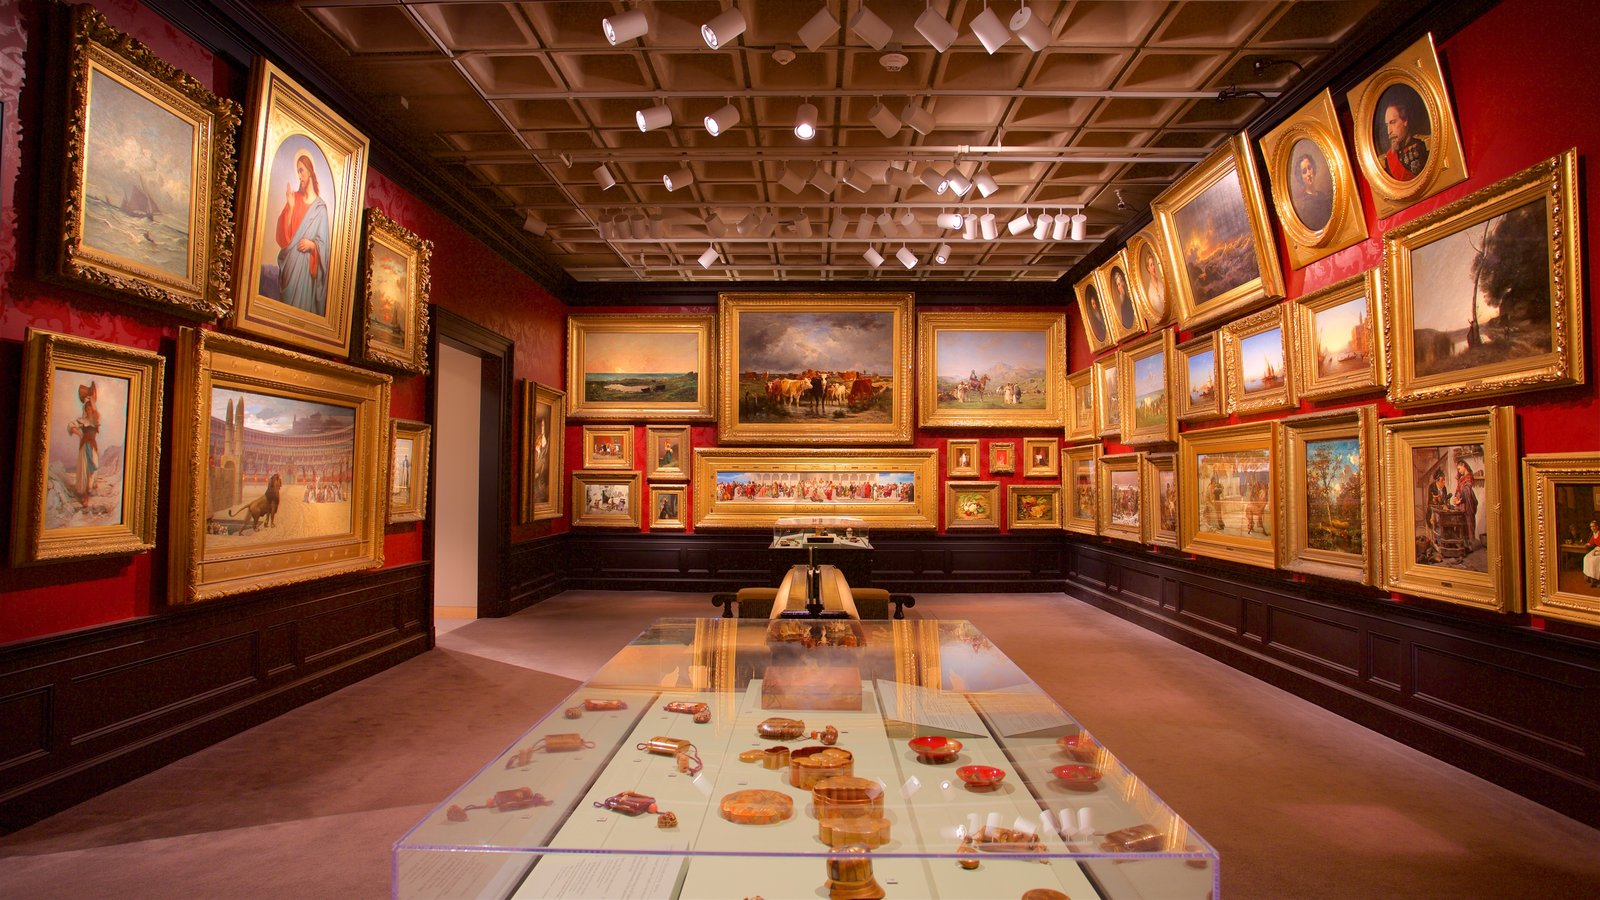 Walters Art  Museum which includes art and interior views